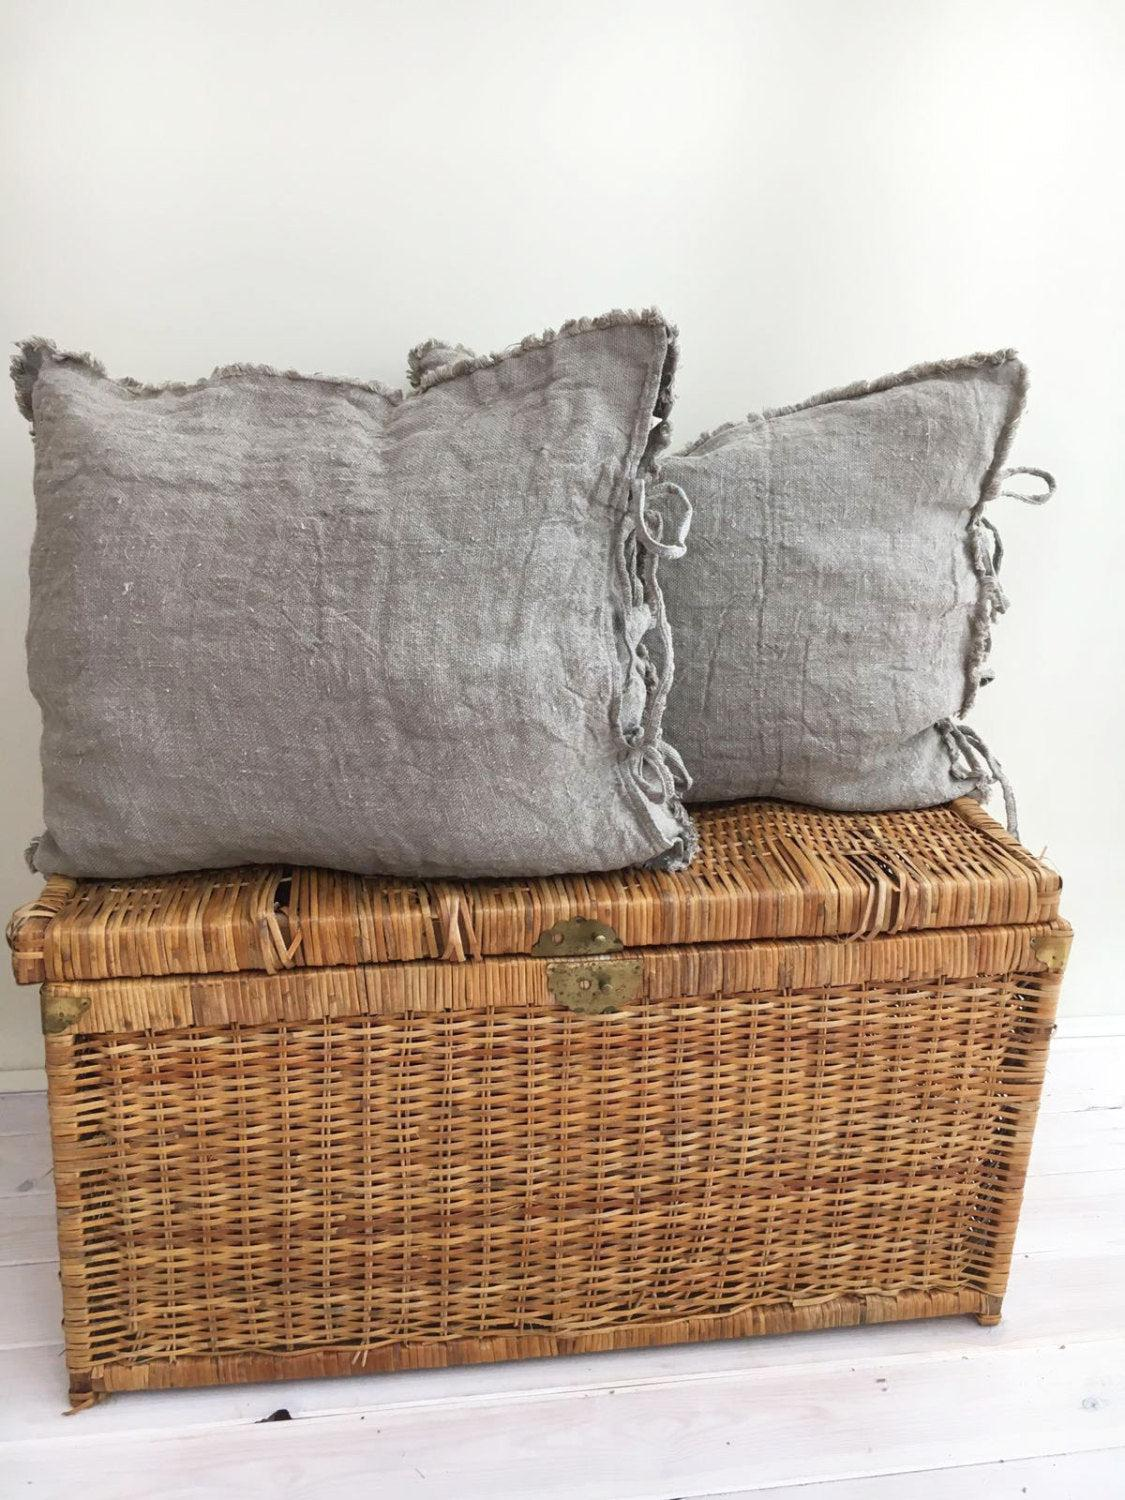 Burlap Pillow Covers, Farmhouse Shams, Throw Pillow Covers 18 x 18 Rustic linen shams Natural Raw linen sham covers Linen Pillowcases Burlap